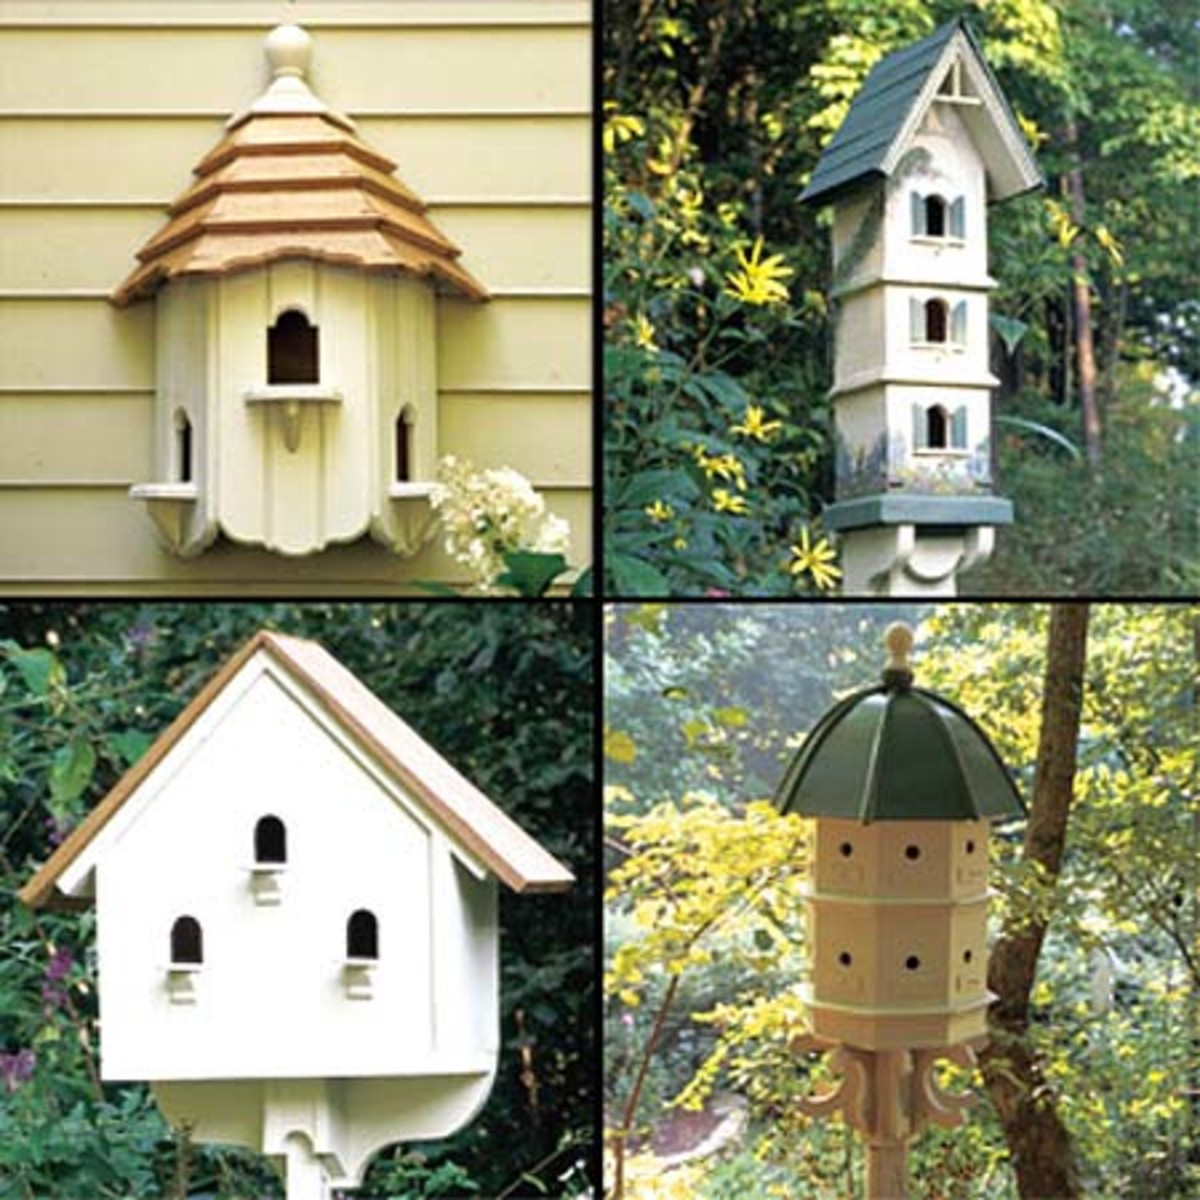 build or purchase bird houses and put them up around your yard and